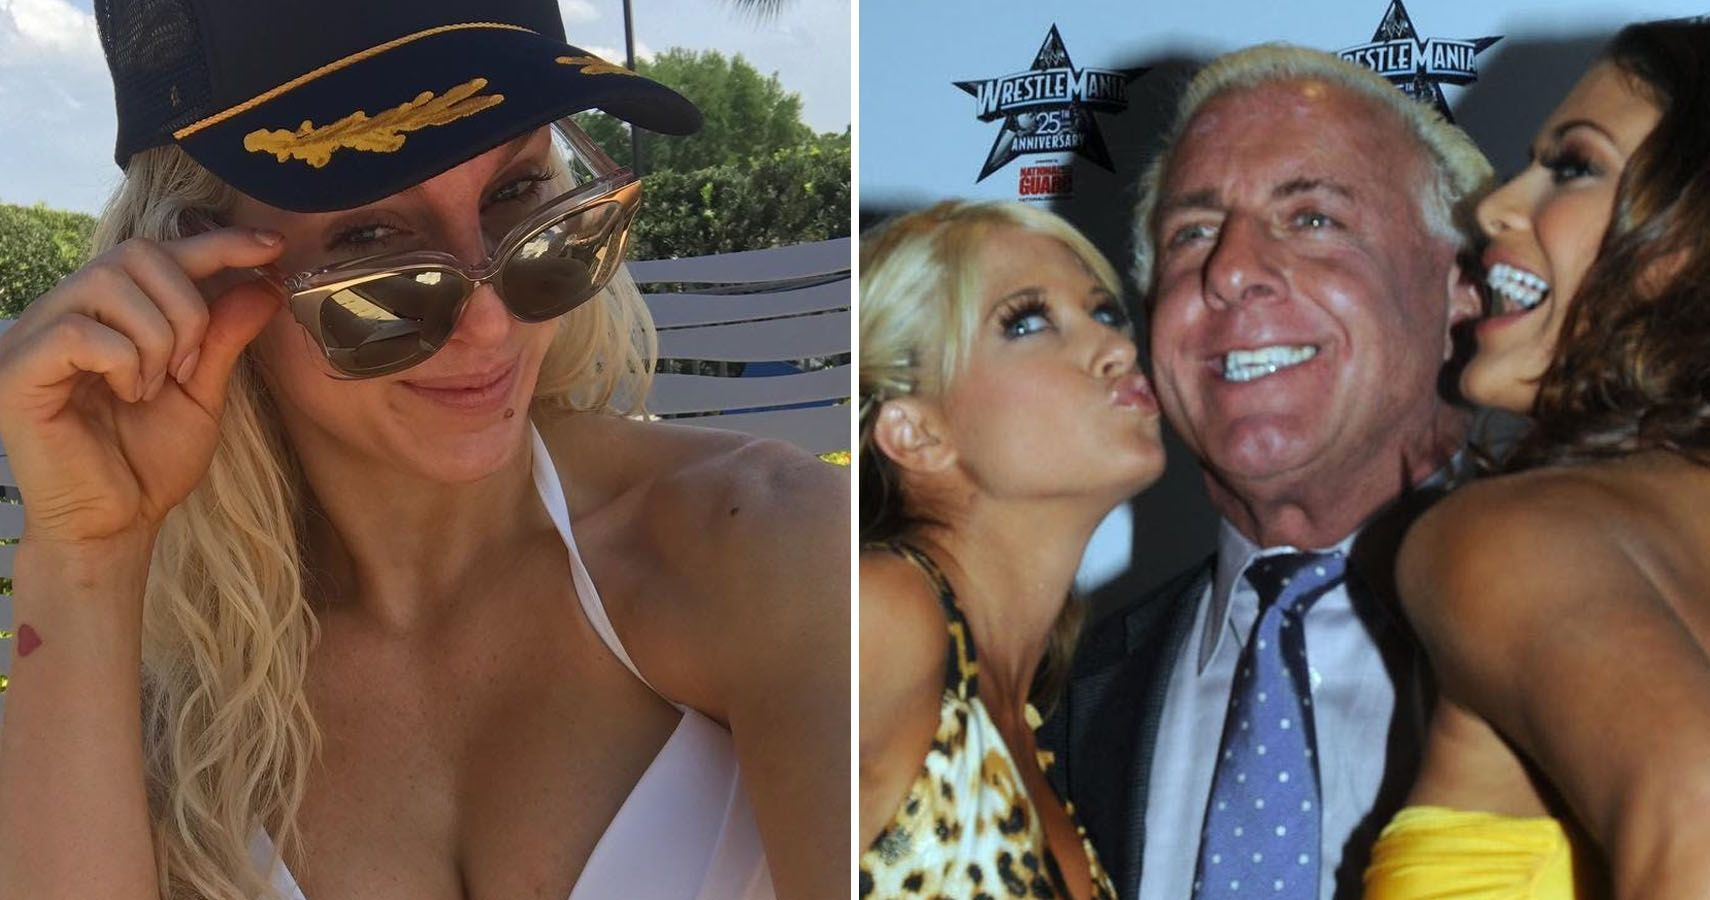 pictures the flair family wants you to share (and they don't)